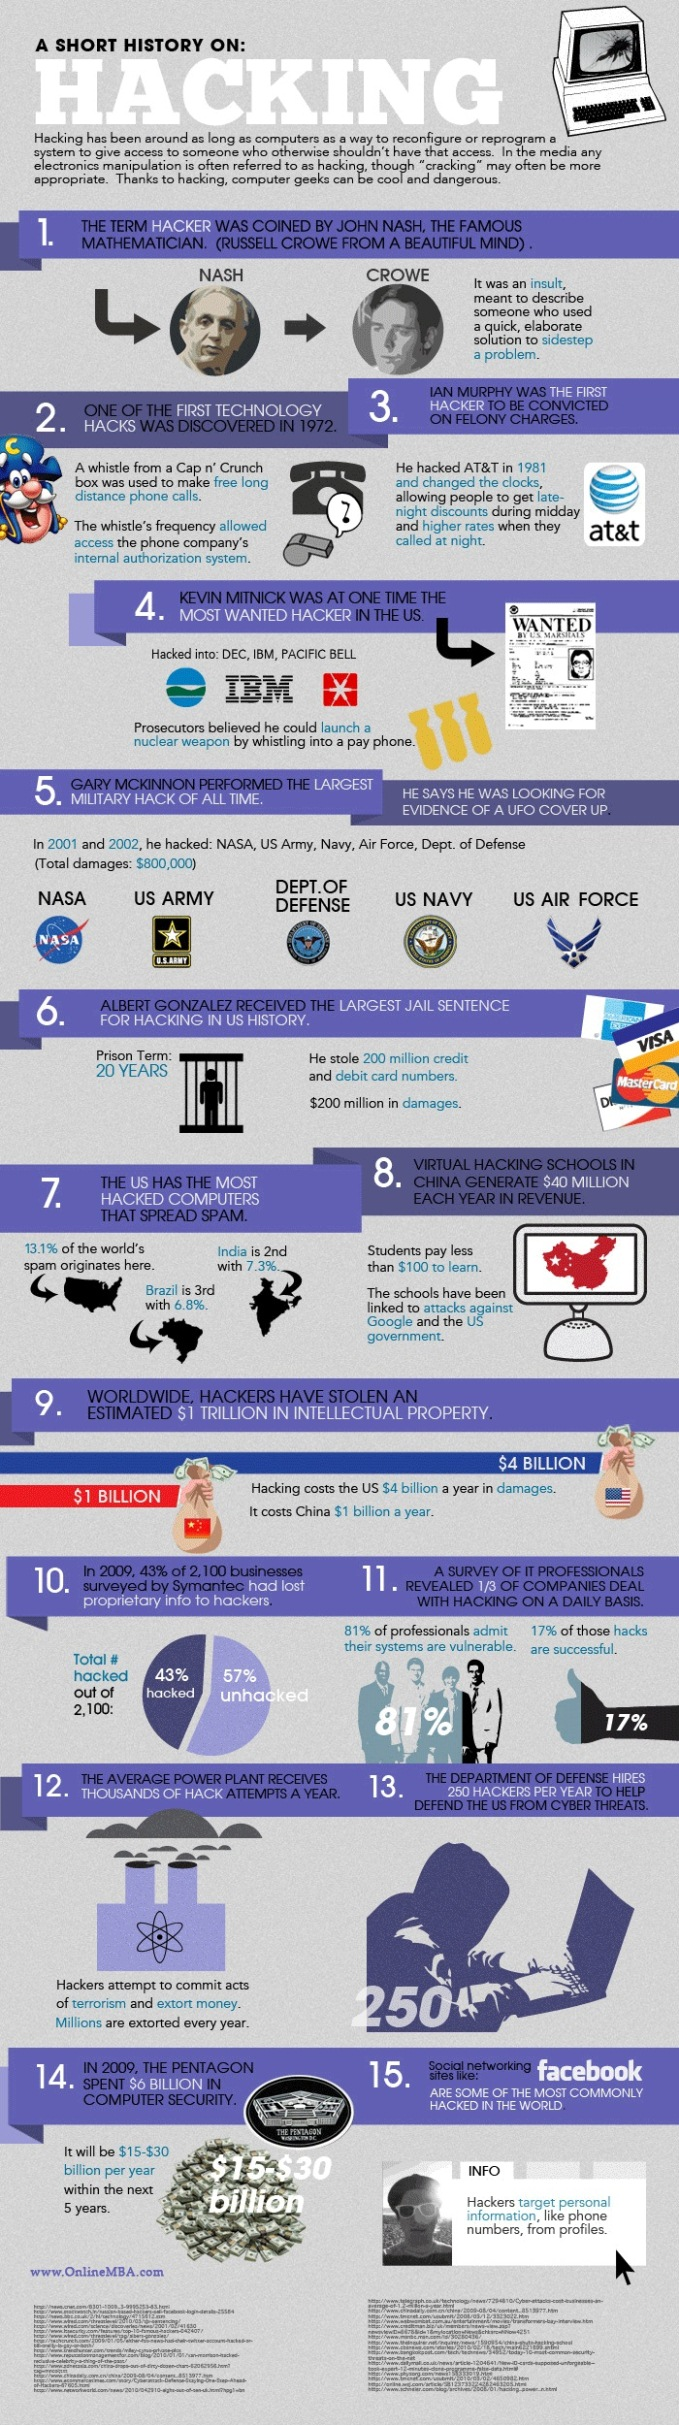 the importance of information warfare hacking warfare and information manipulation Krutskikh's comments highlight the emerging world of information warfare, where fake news and hacking are tools for covert warriors in many nations the senior administration official warns: the russians are particularly advanced — in technology, organization and doctrine.